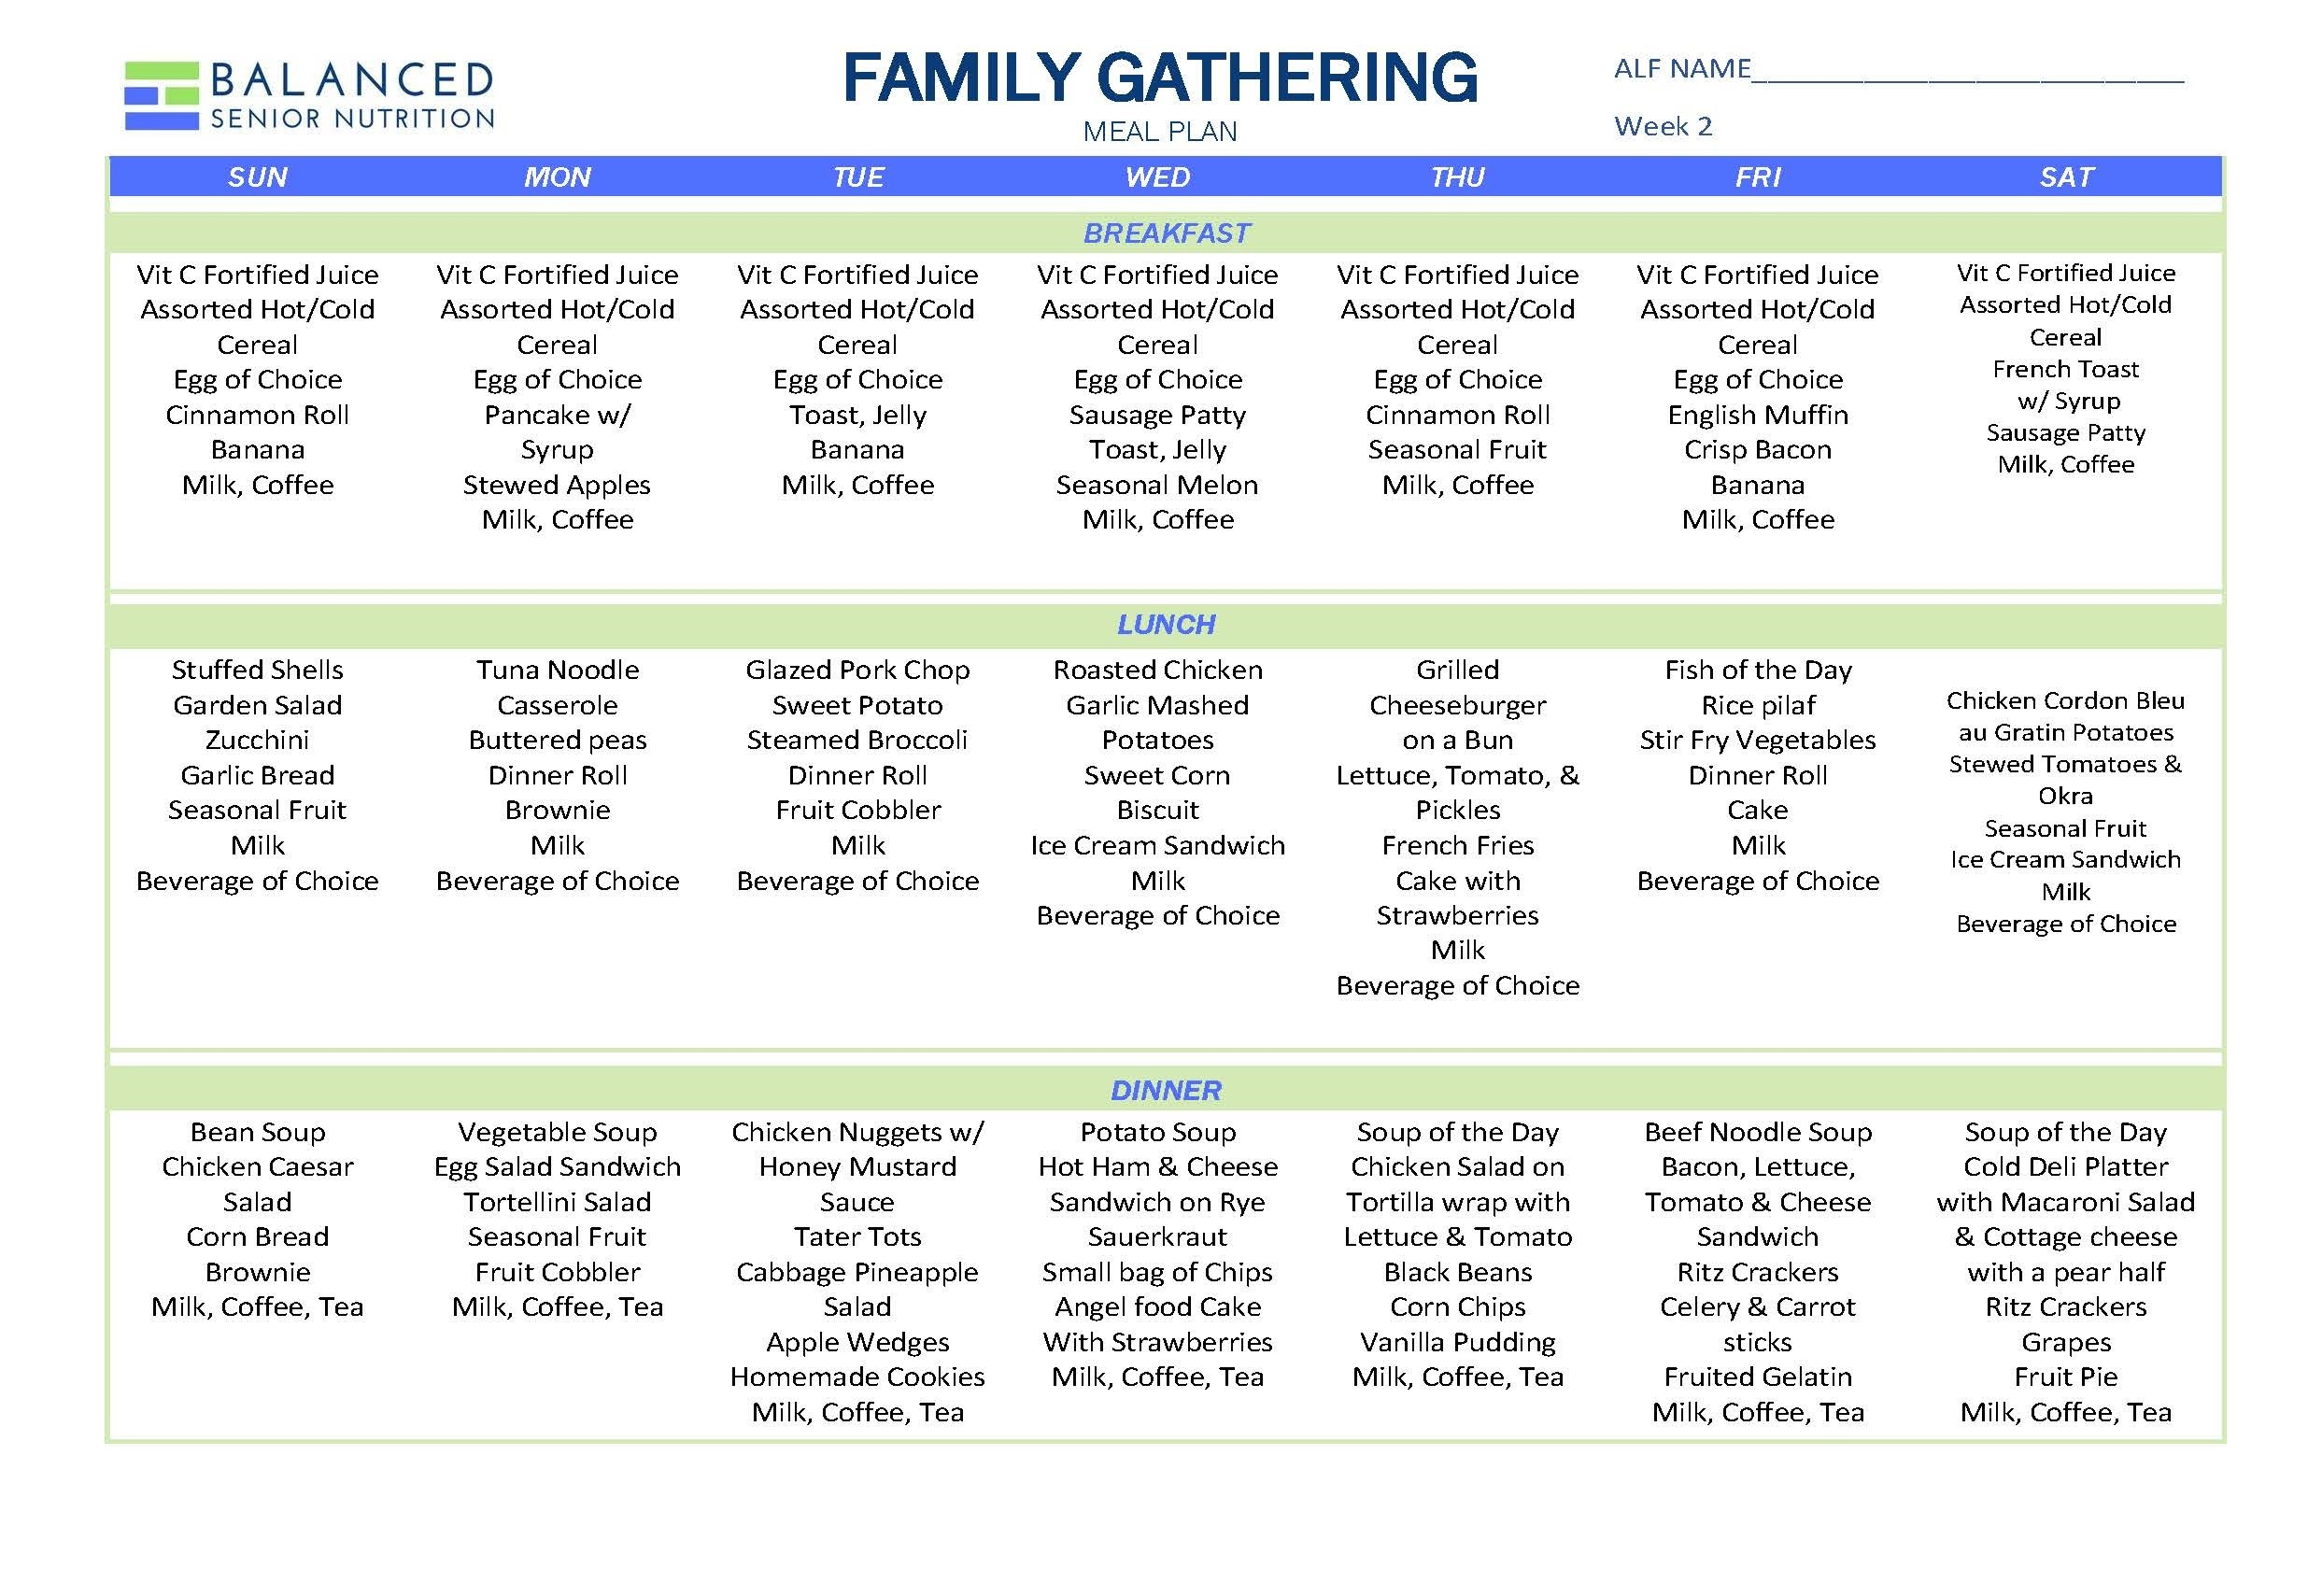 Family Gathering Menu